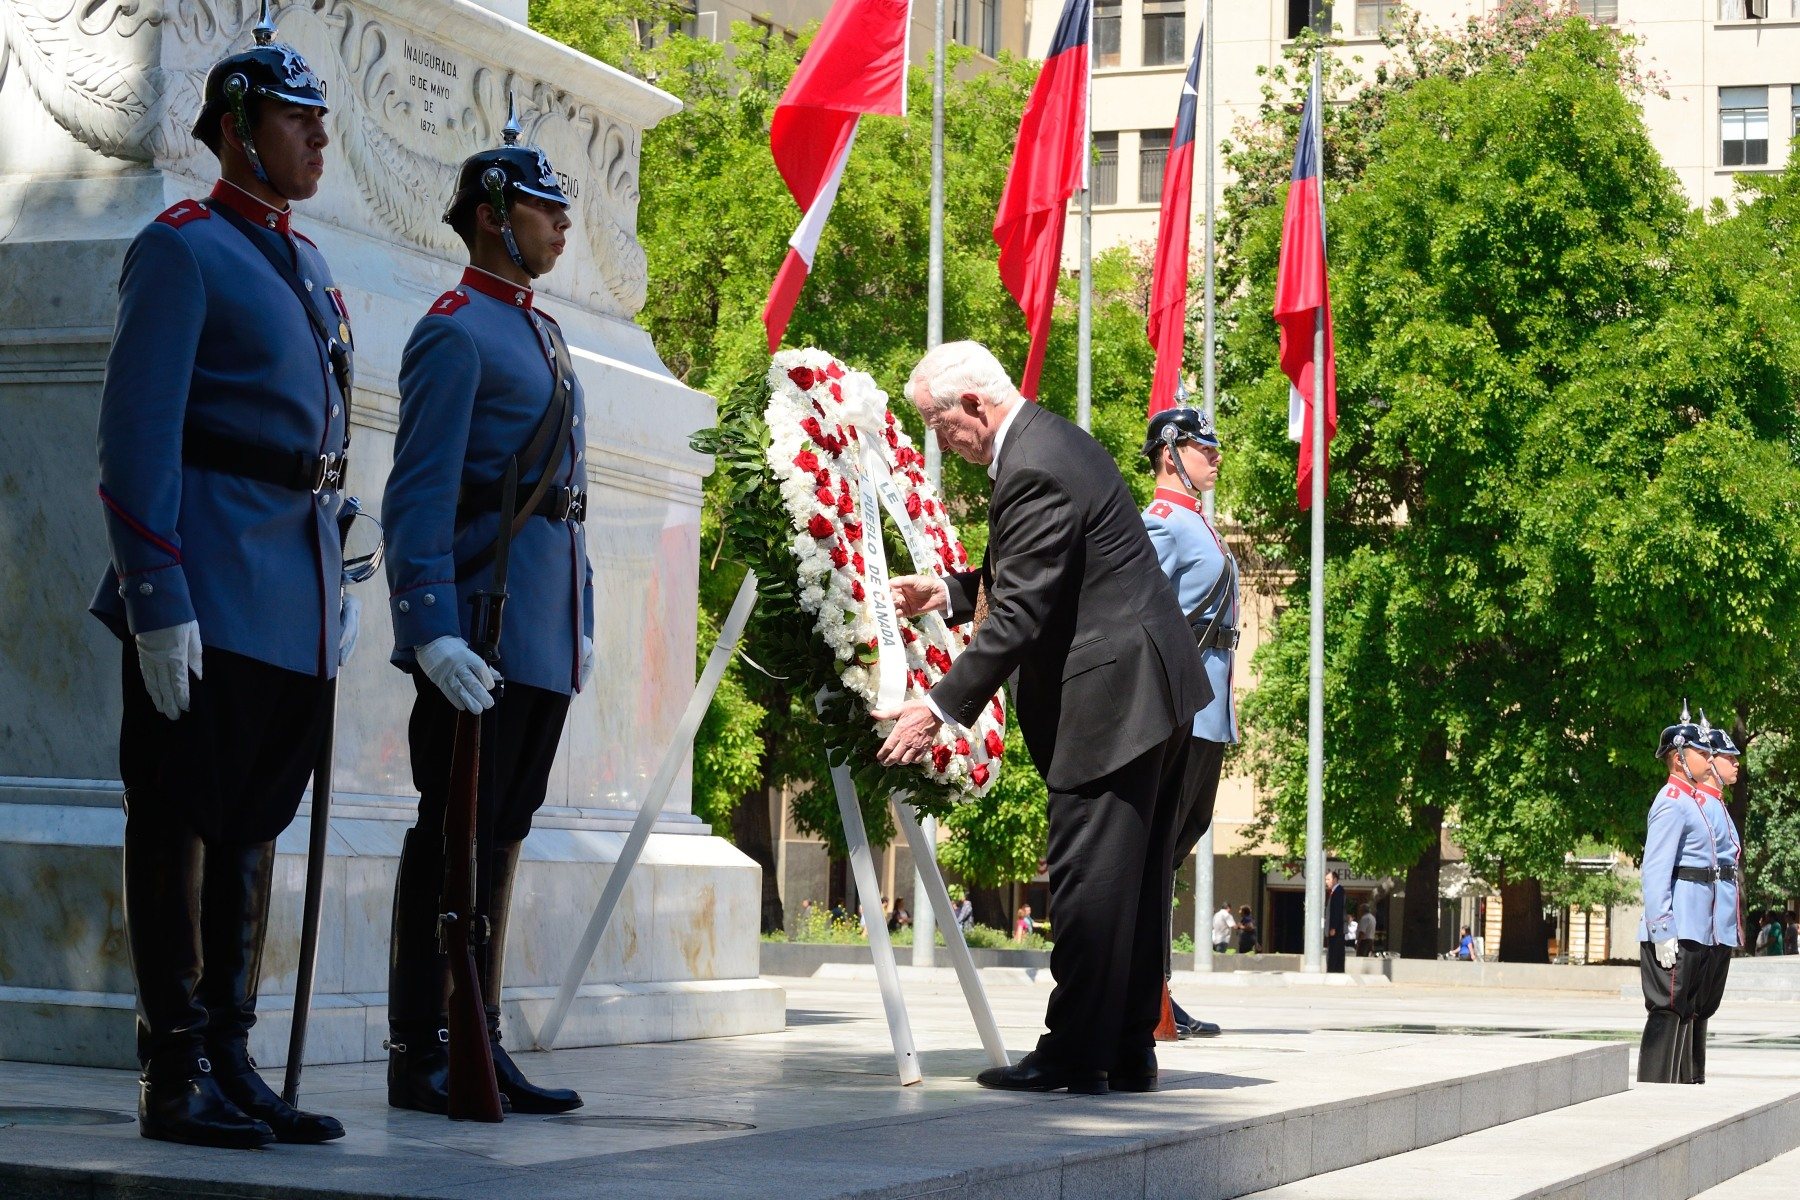 The Governor General laid a wreath at the Monument to Bernardo O'Higgins, a Chilean leader who freed Chile from Spanish rule in the Chilean War of Independence.